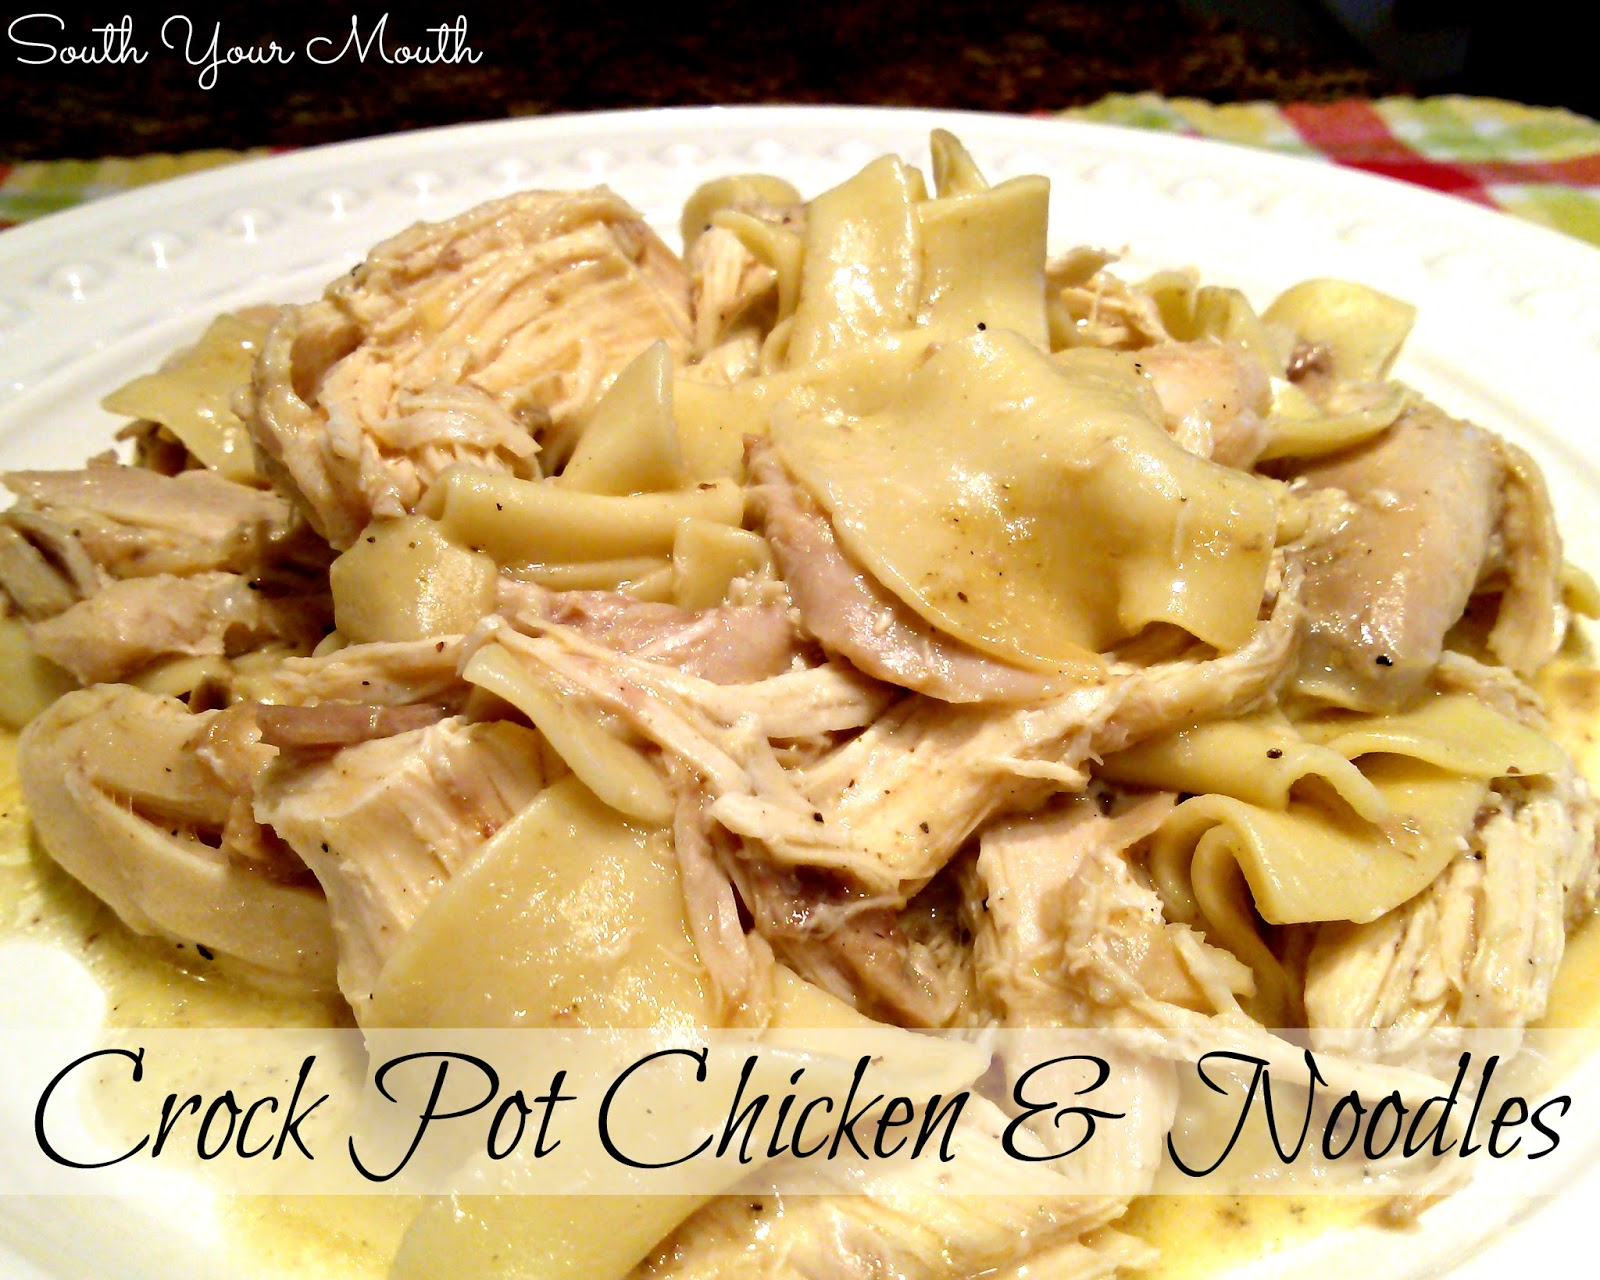 South your mouth crock pot chicken and noodles crock forumfinder Gallery